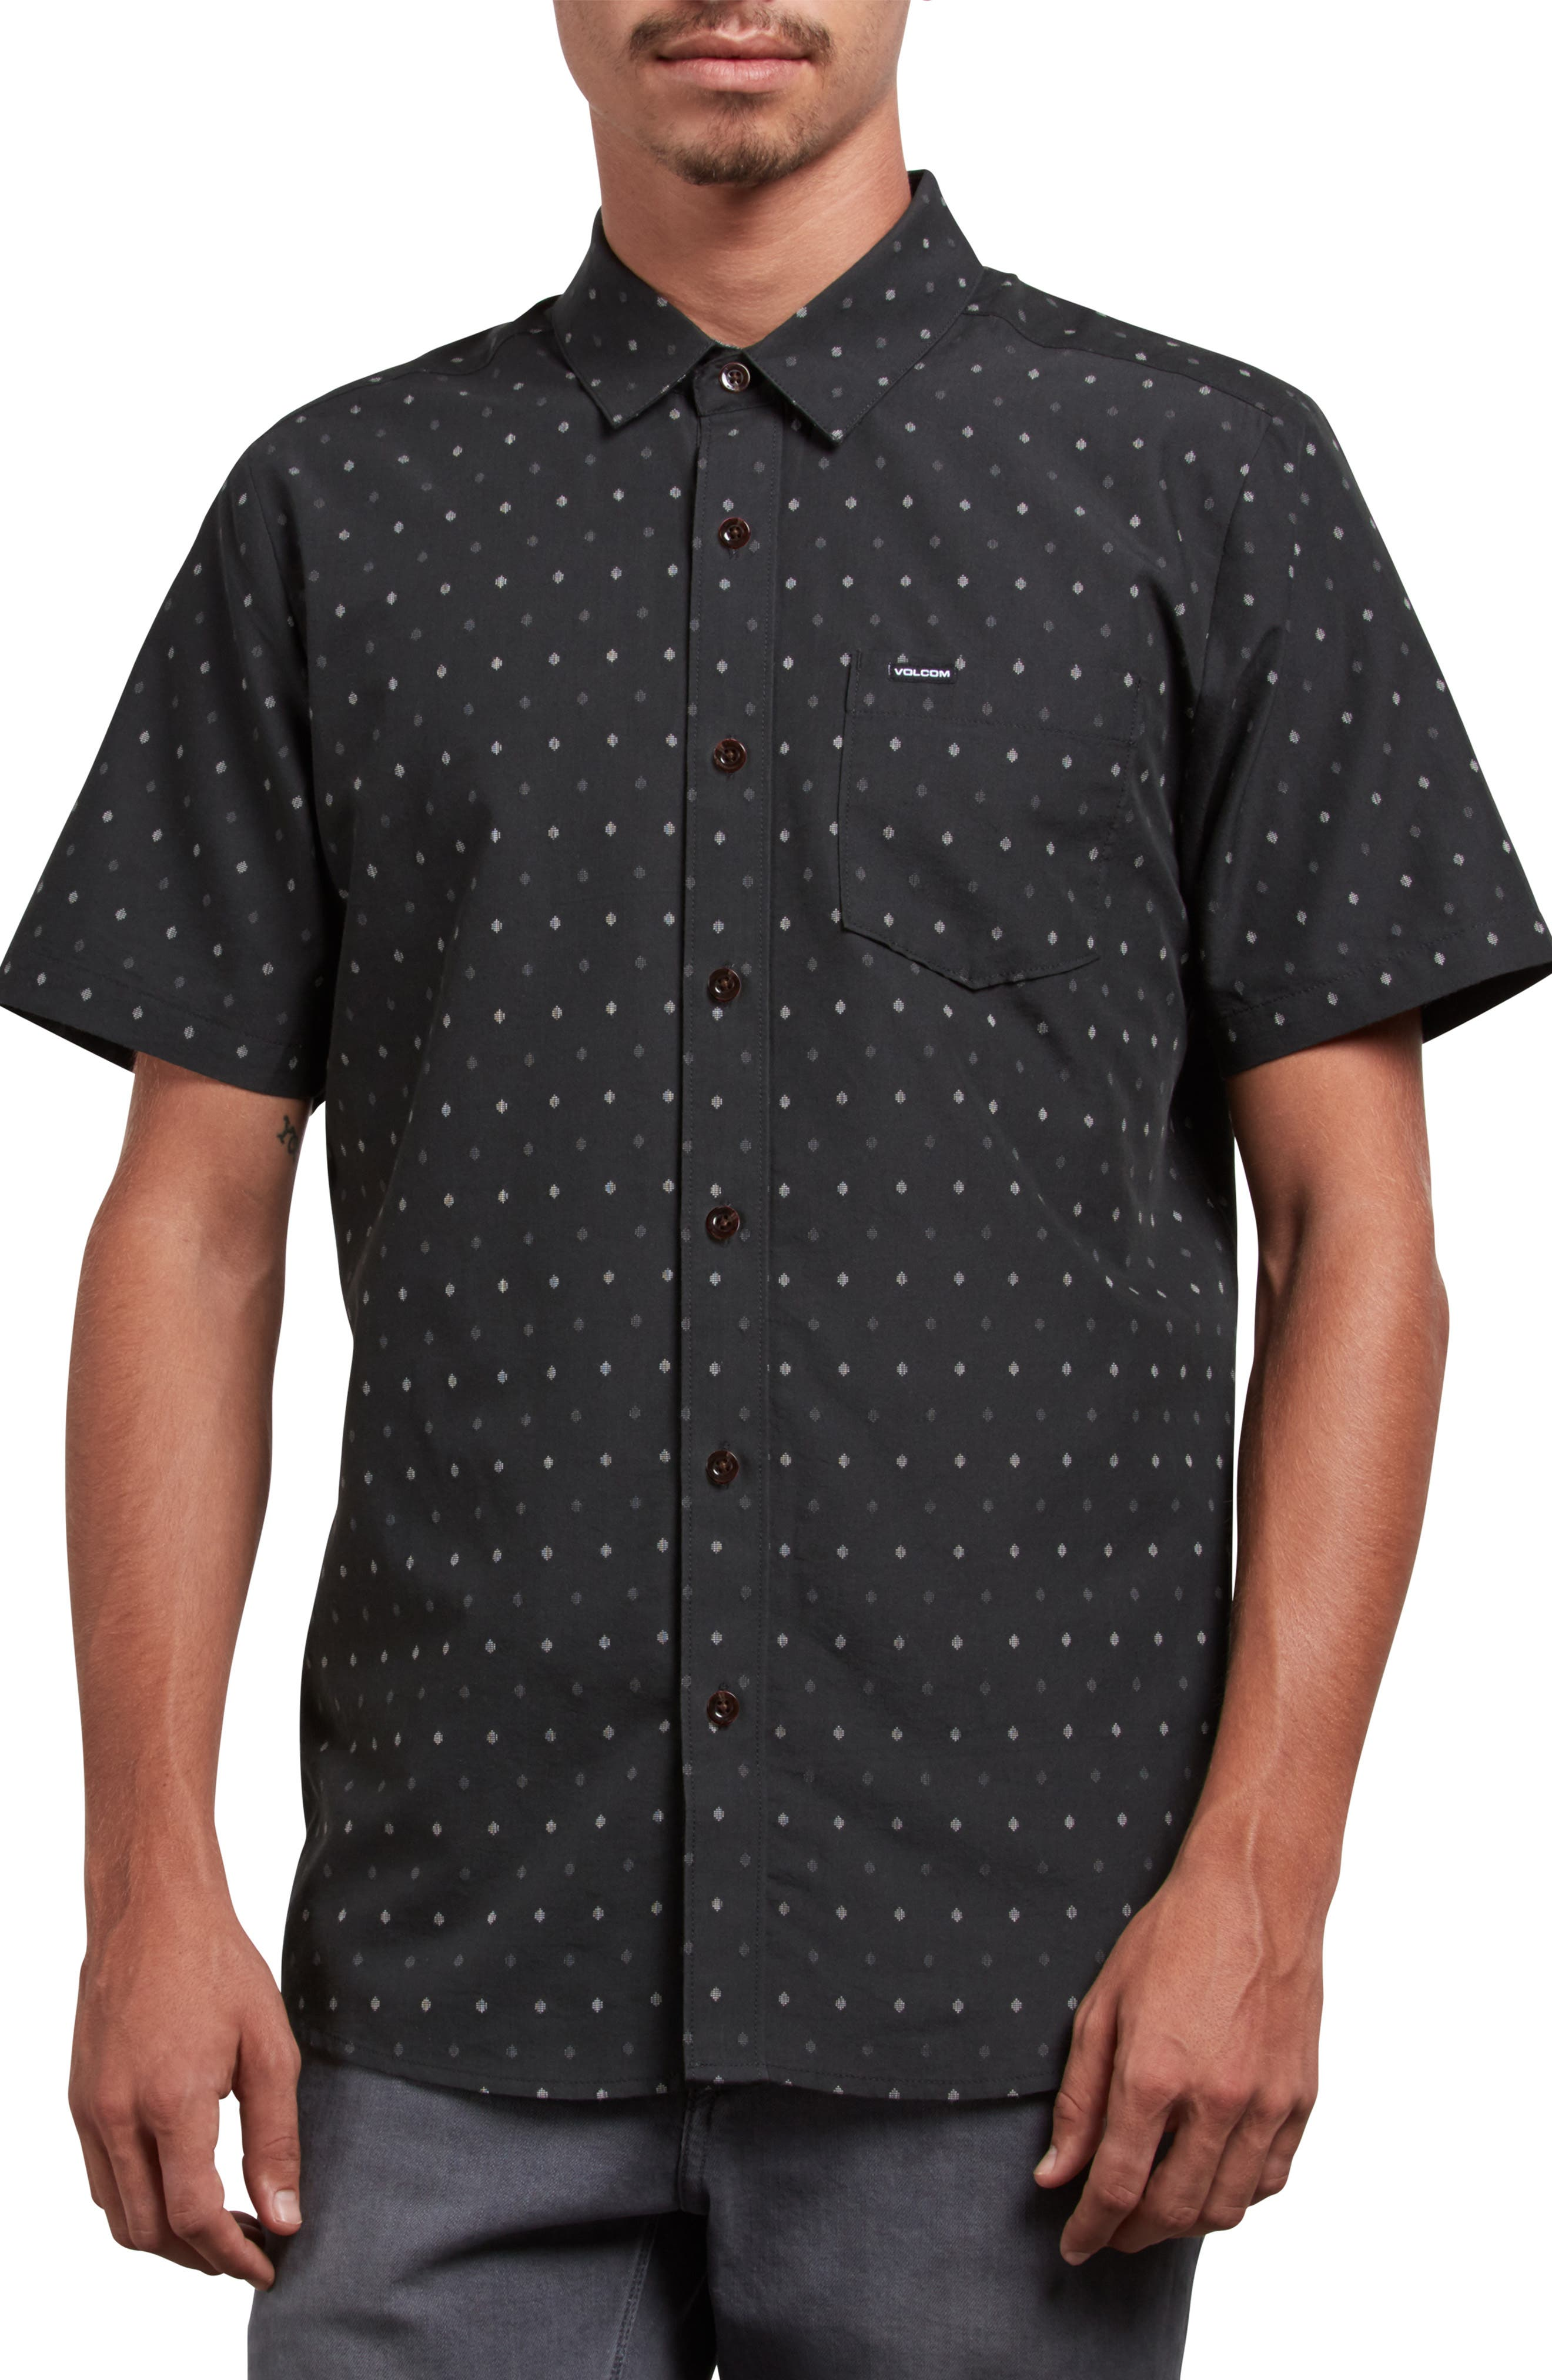 Frequency Dot Short Sleeve Woven Shirt,                         Main,                         color, 020